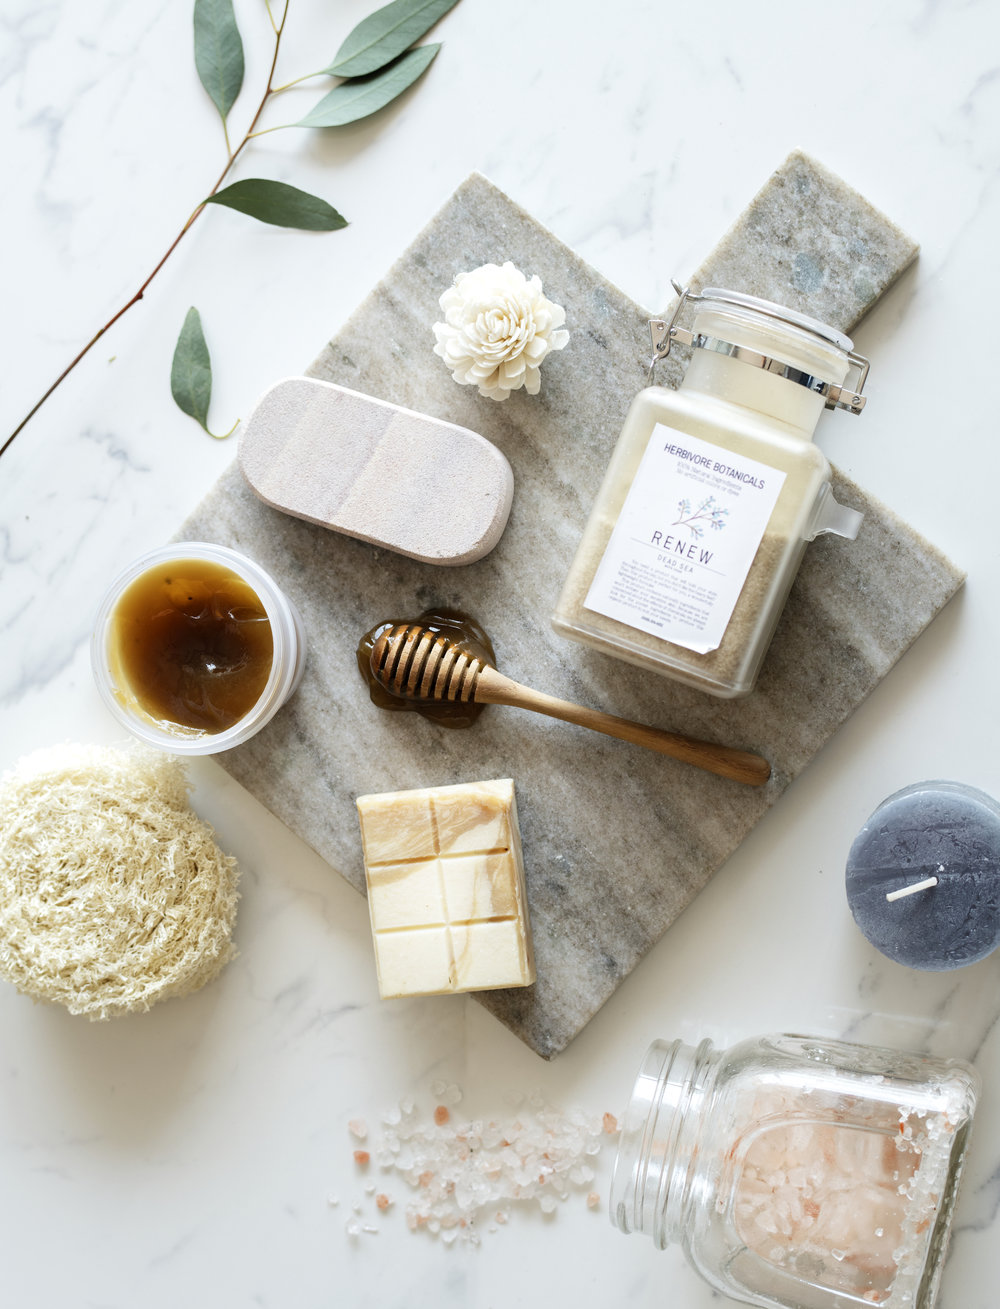 Healthy, non-toxic products